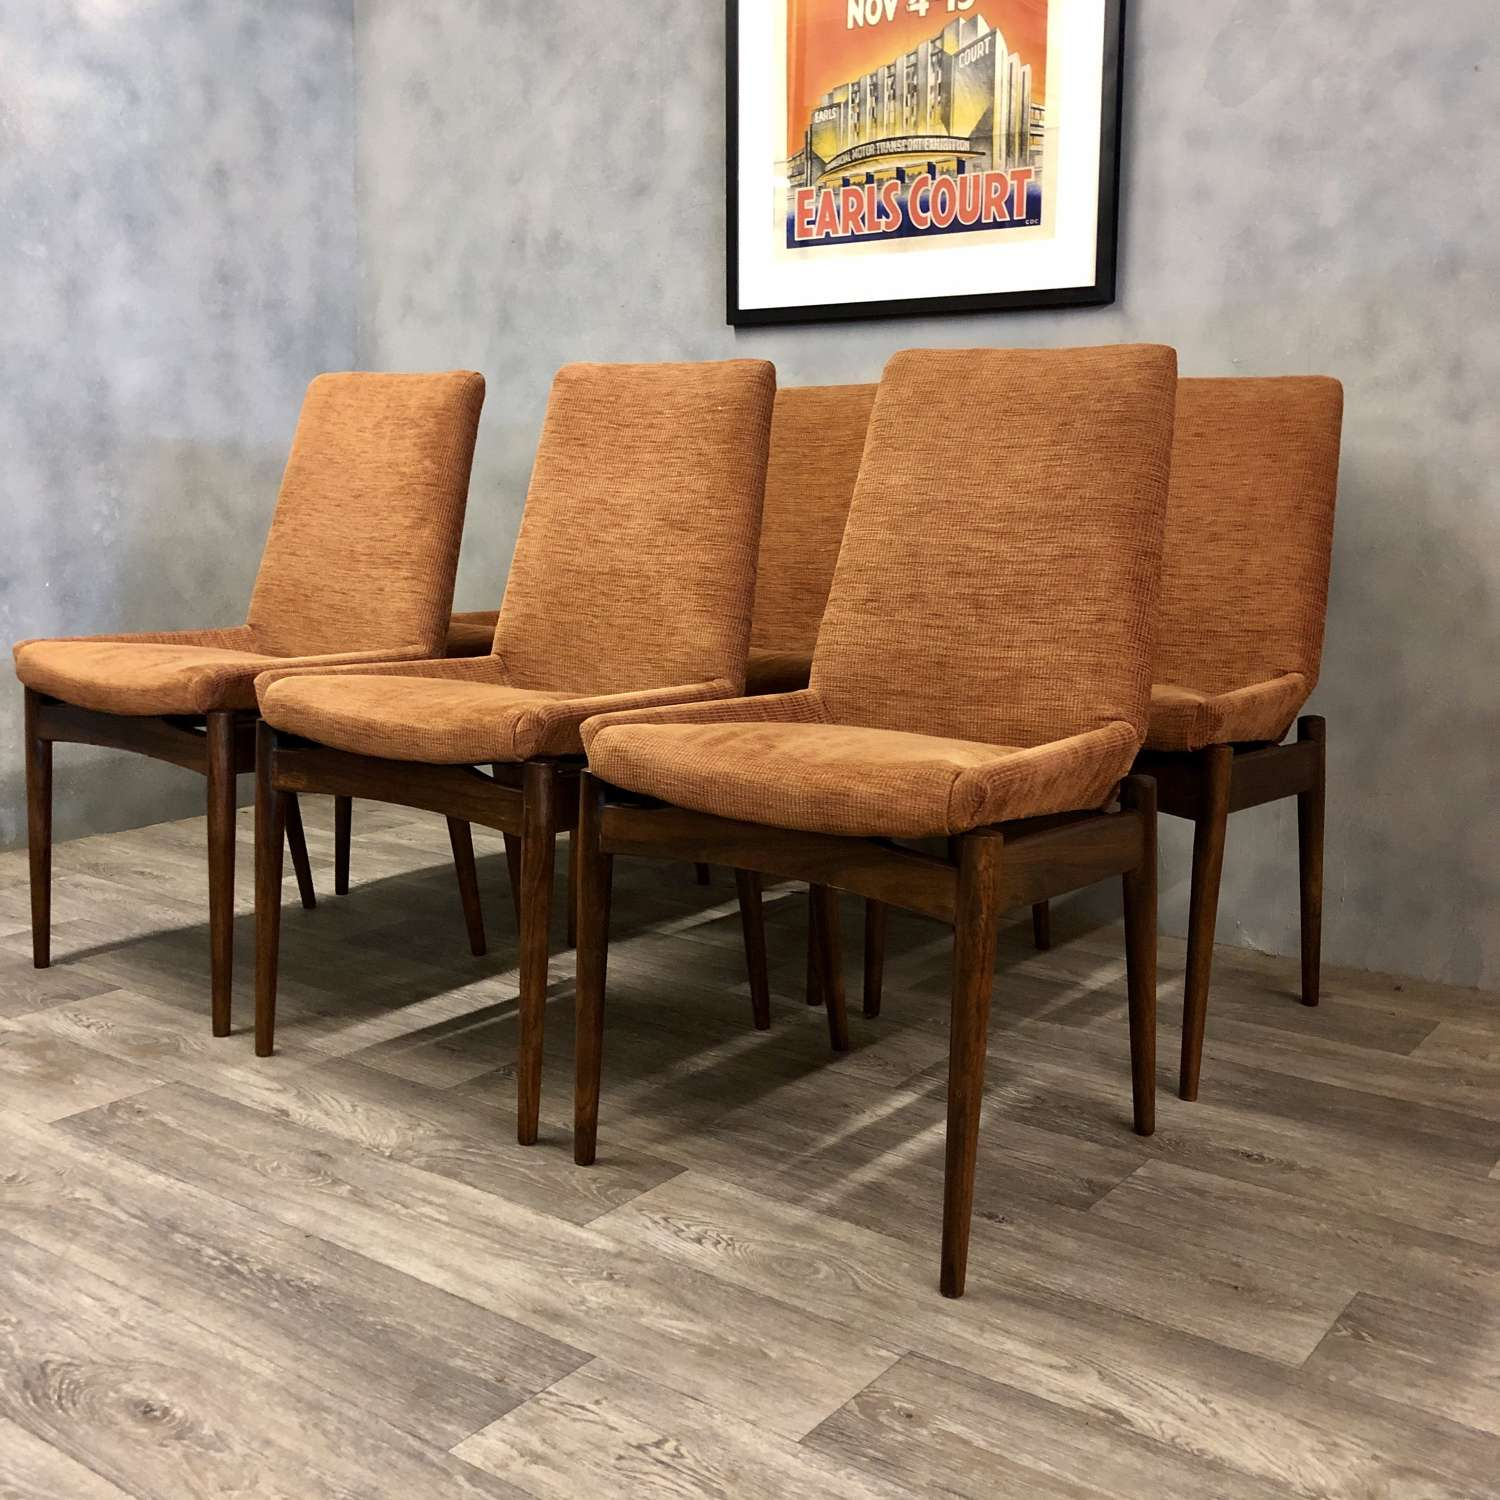 Archie Shine dining chairs rosewood (6)